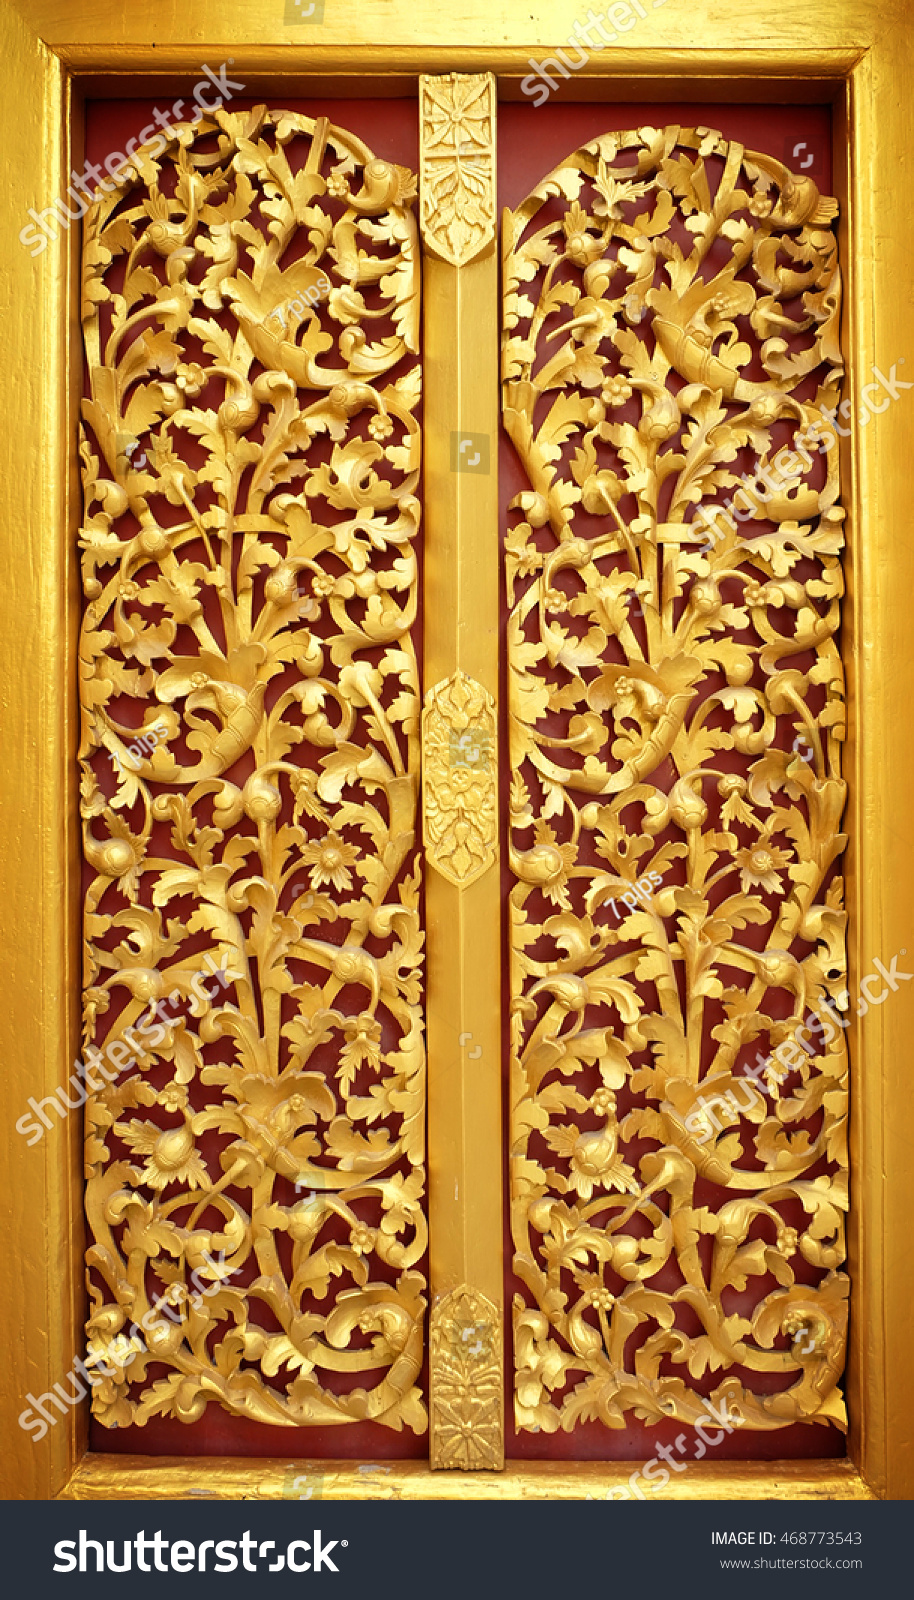 Gold Door Of The Temple Is Very Beautiful Pattern Lai Kanok (Thai Design)  Carved